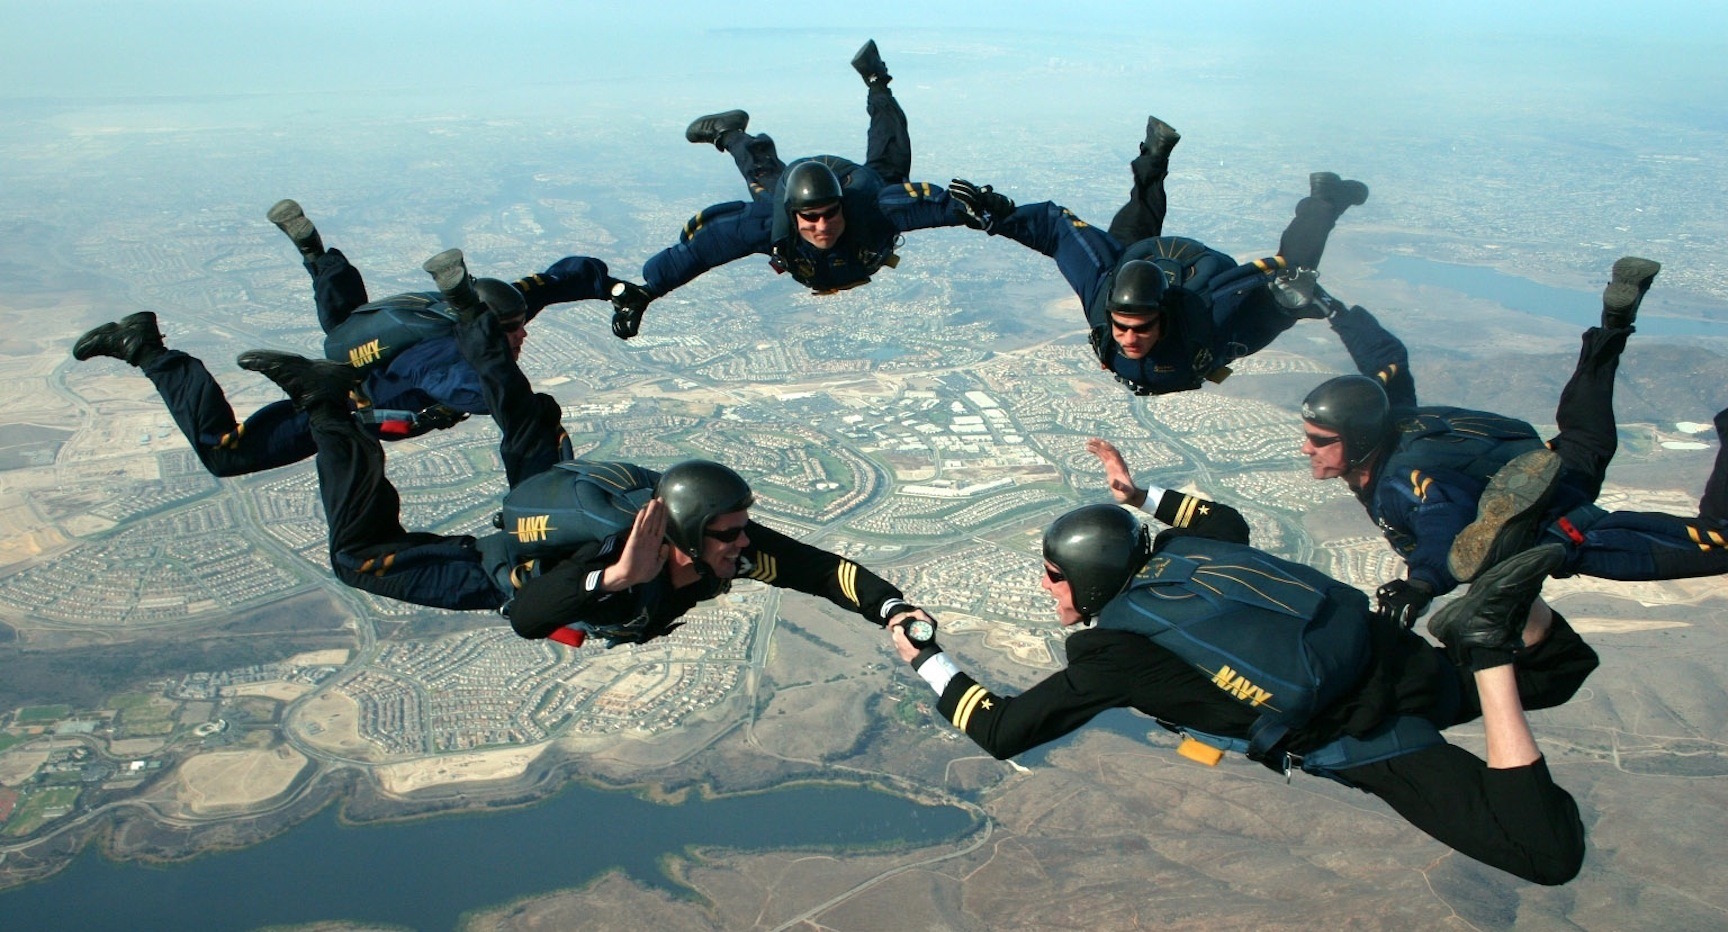 skydiving-care-coordination.jpg